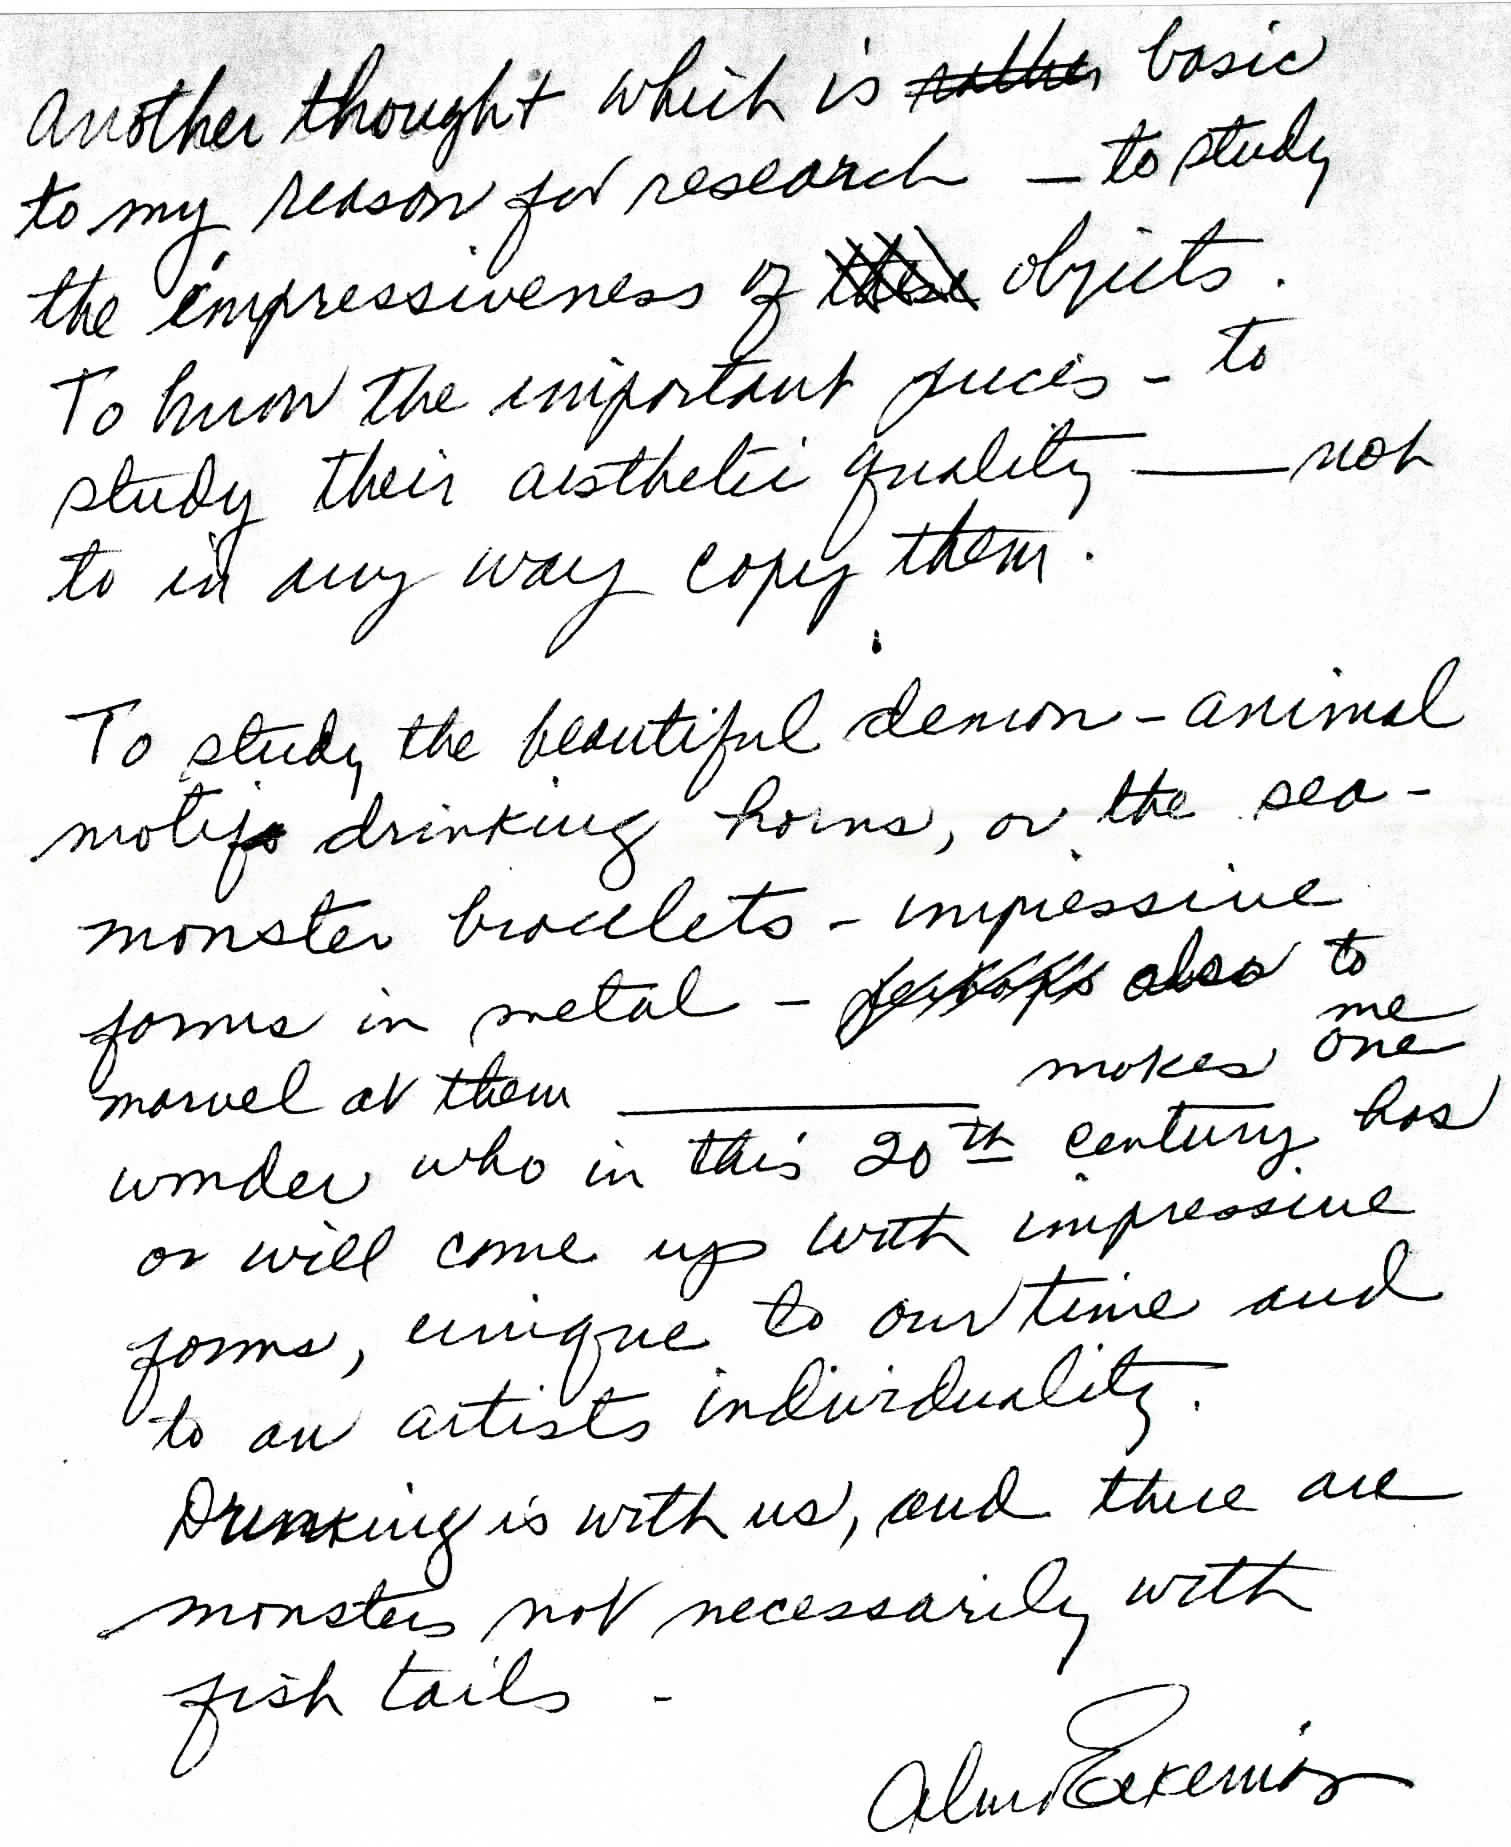 Alma Eikerman to Sara Bodine, 2 April, 1984. Alma Eikerman papers, C621, Indiana University Archives, Bloomington